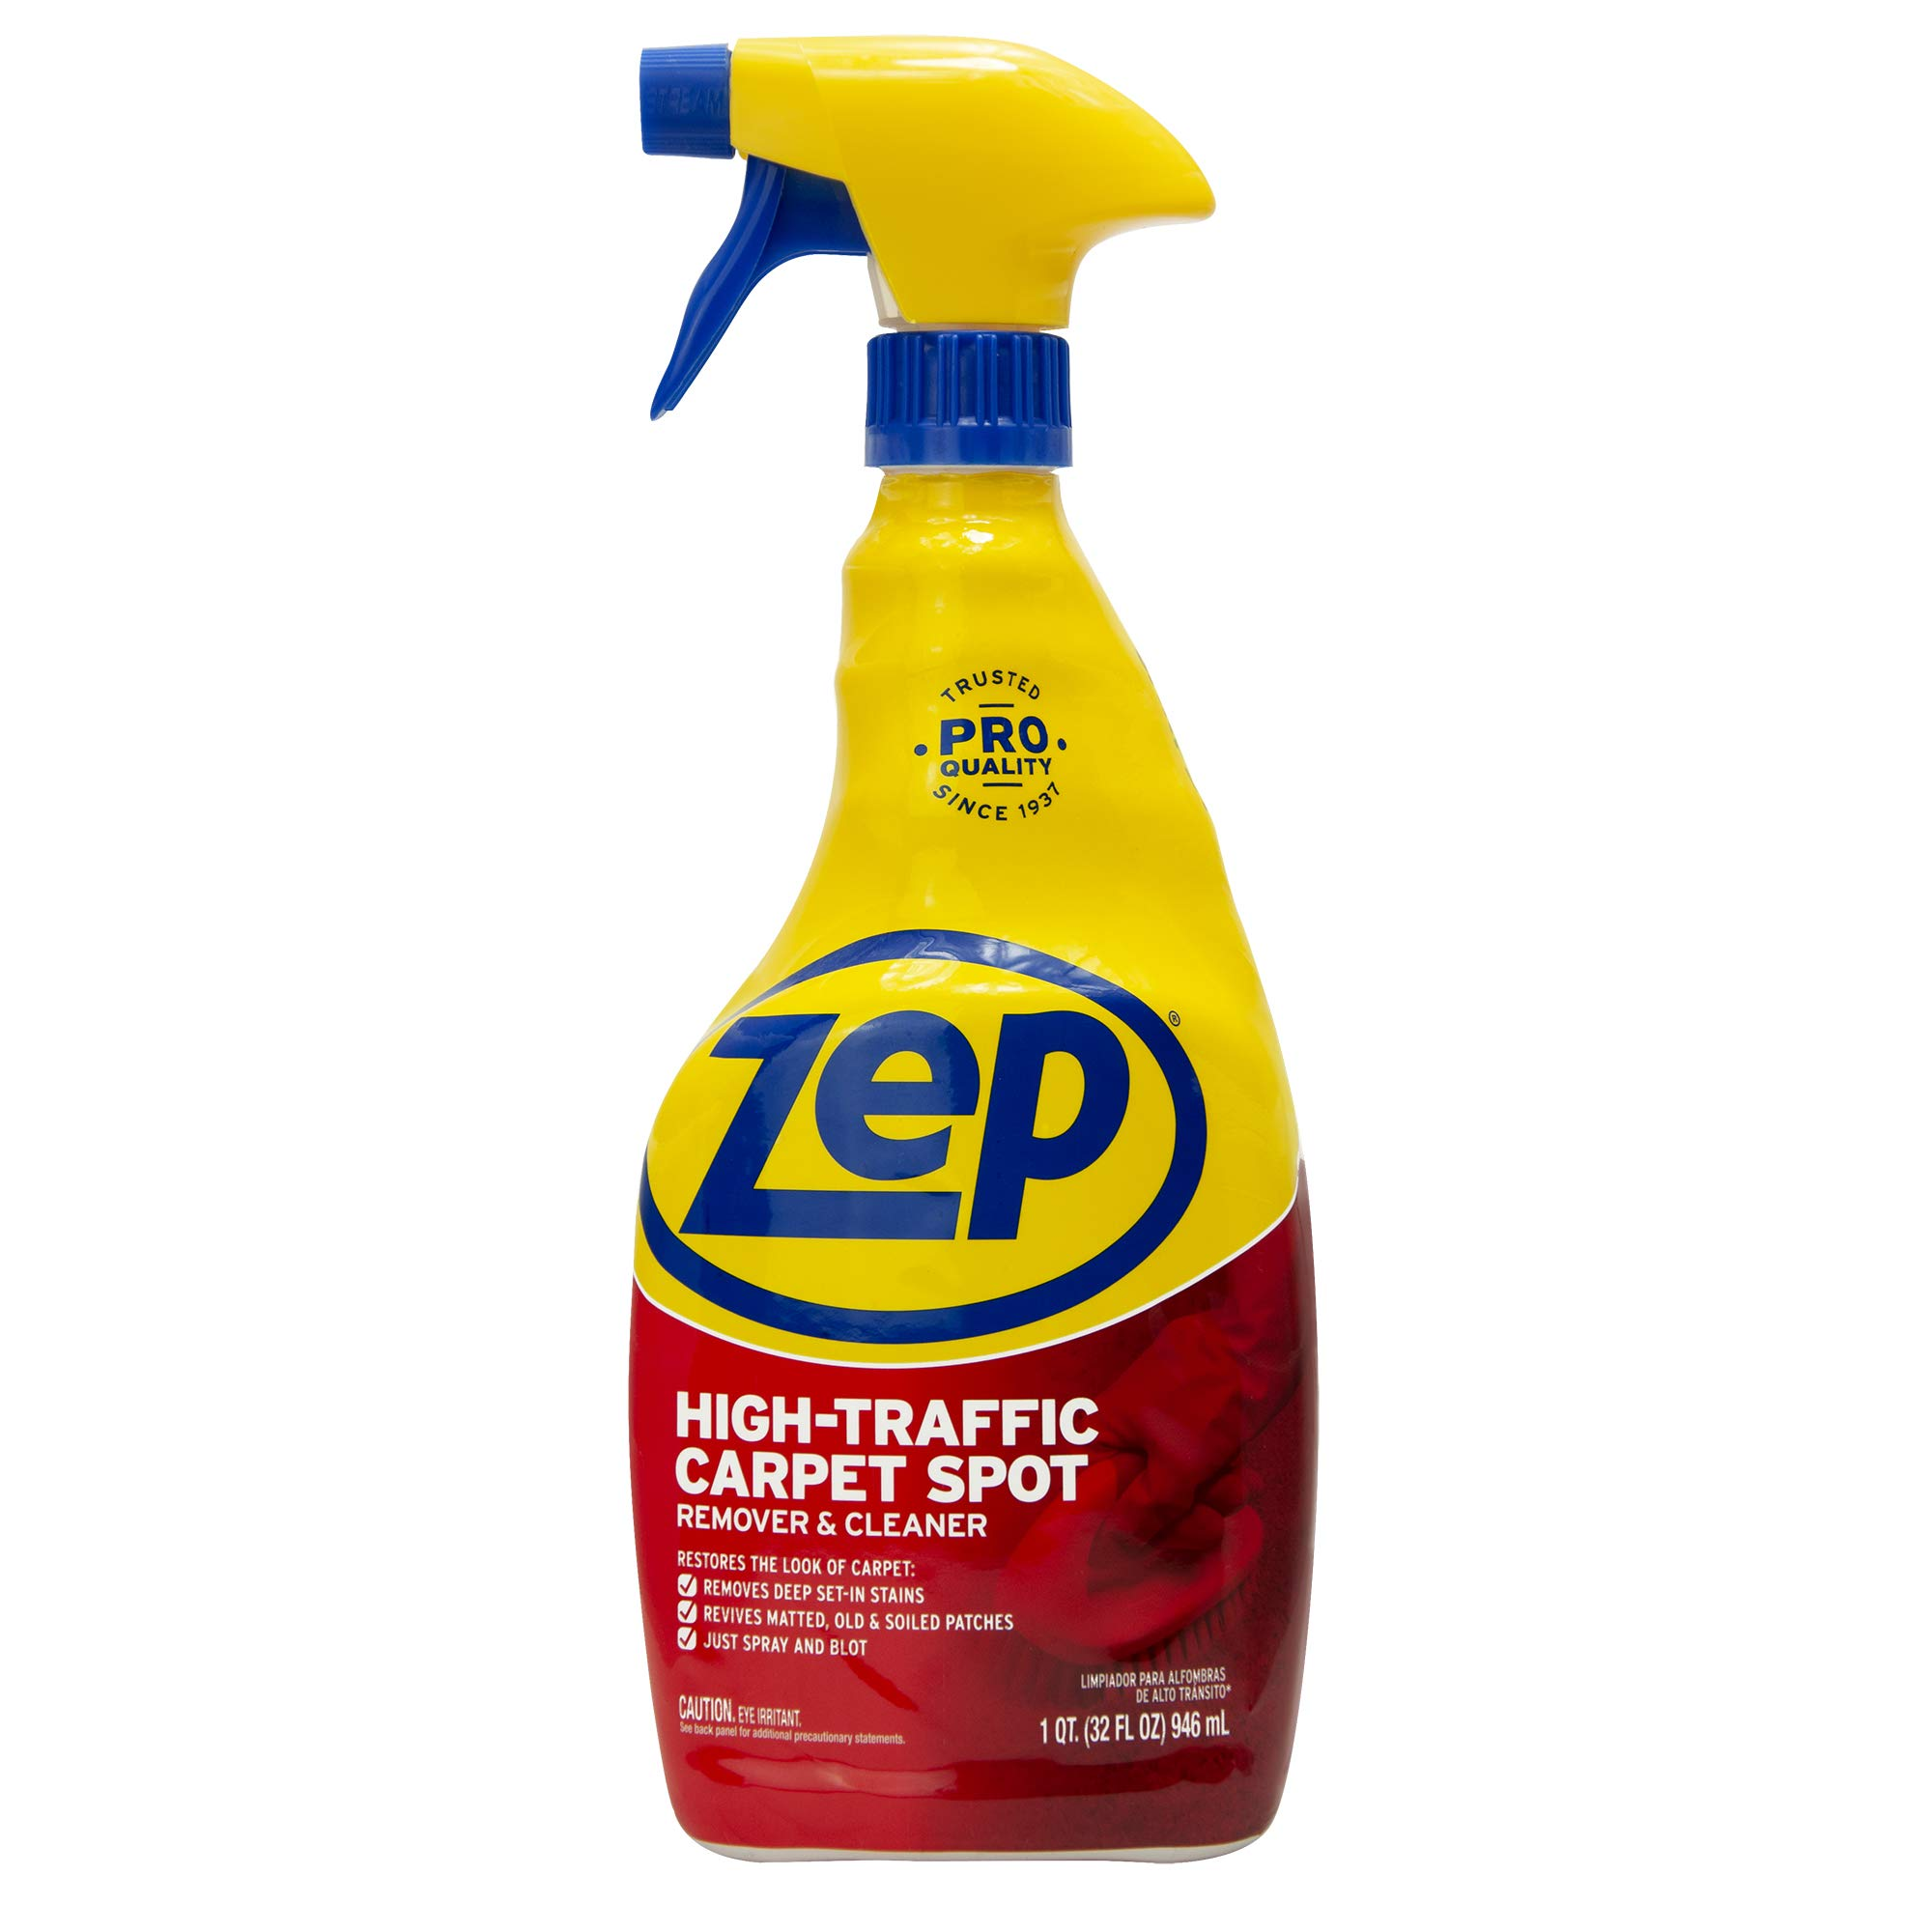 ZEP High Traffic Carpet Cleaner 32 Ounces ZUHTC32 (Case of 12) by Zep (Image #2)